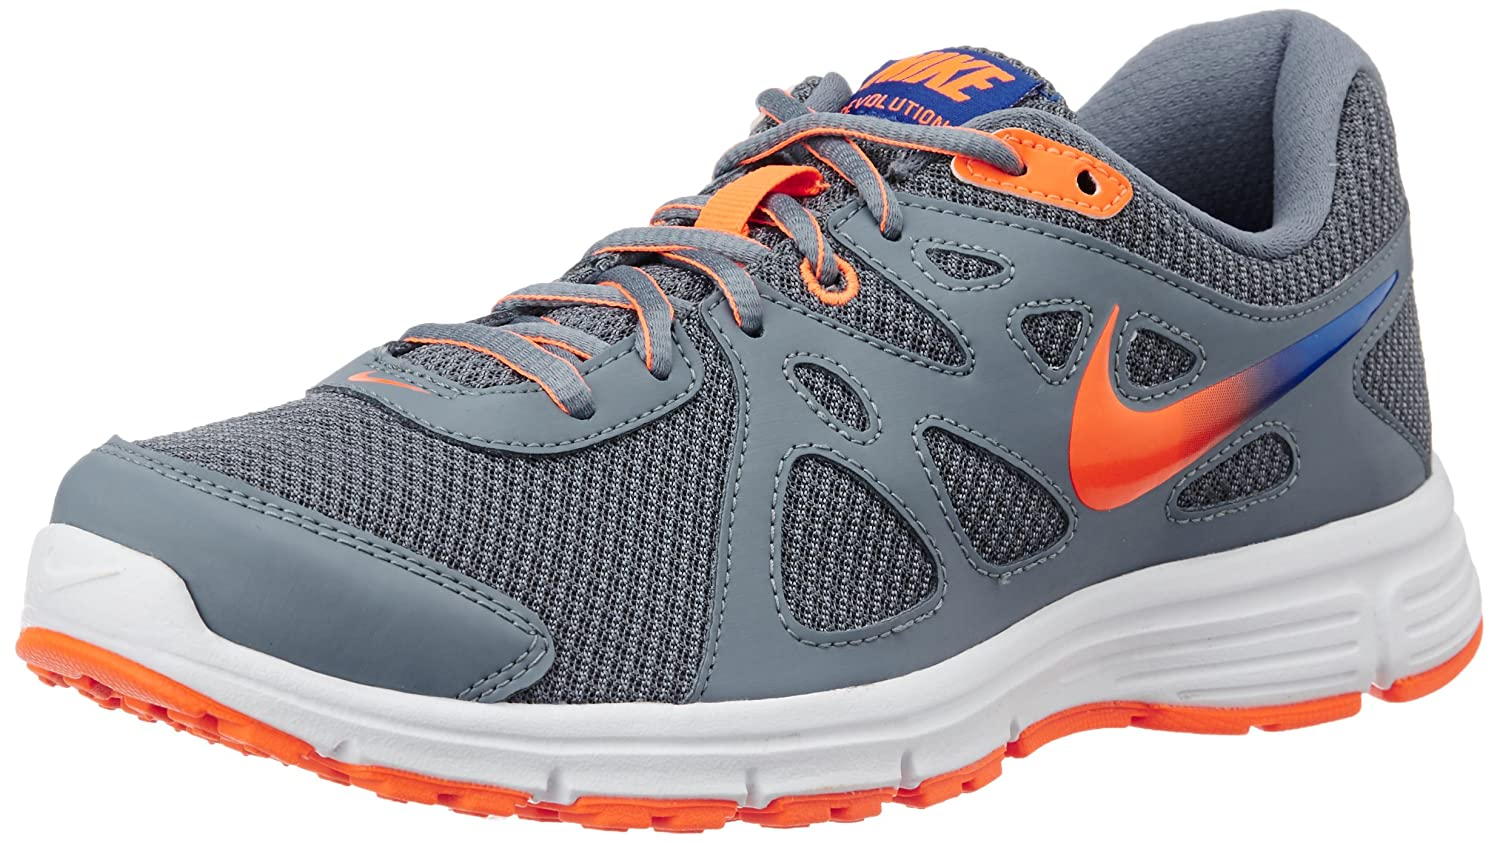 Nike Men\u0027s Revolution 2 Msl Running Shoes: Buy Online at Low Prices in  India - Amazon.in